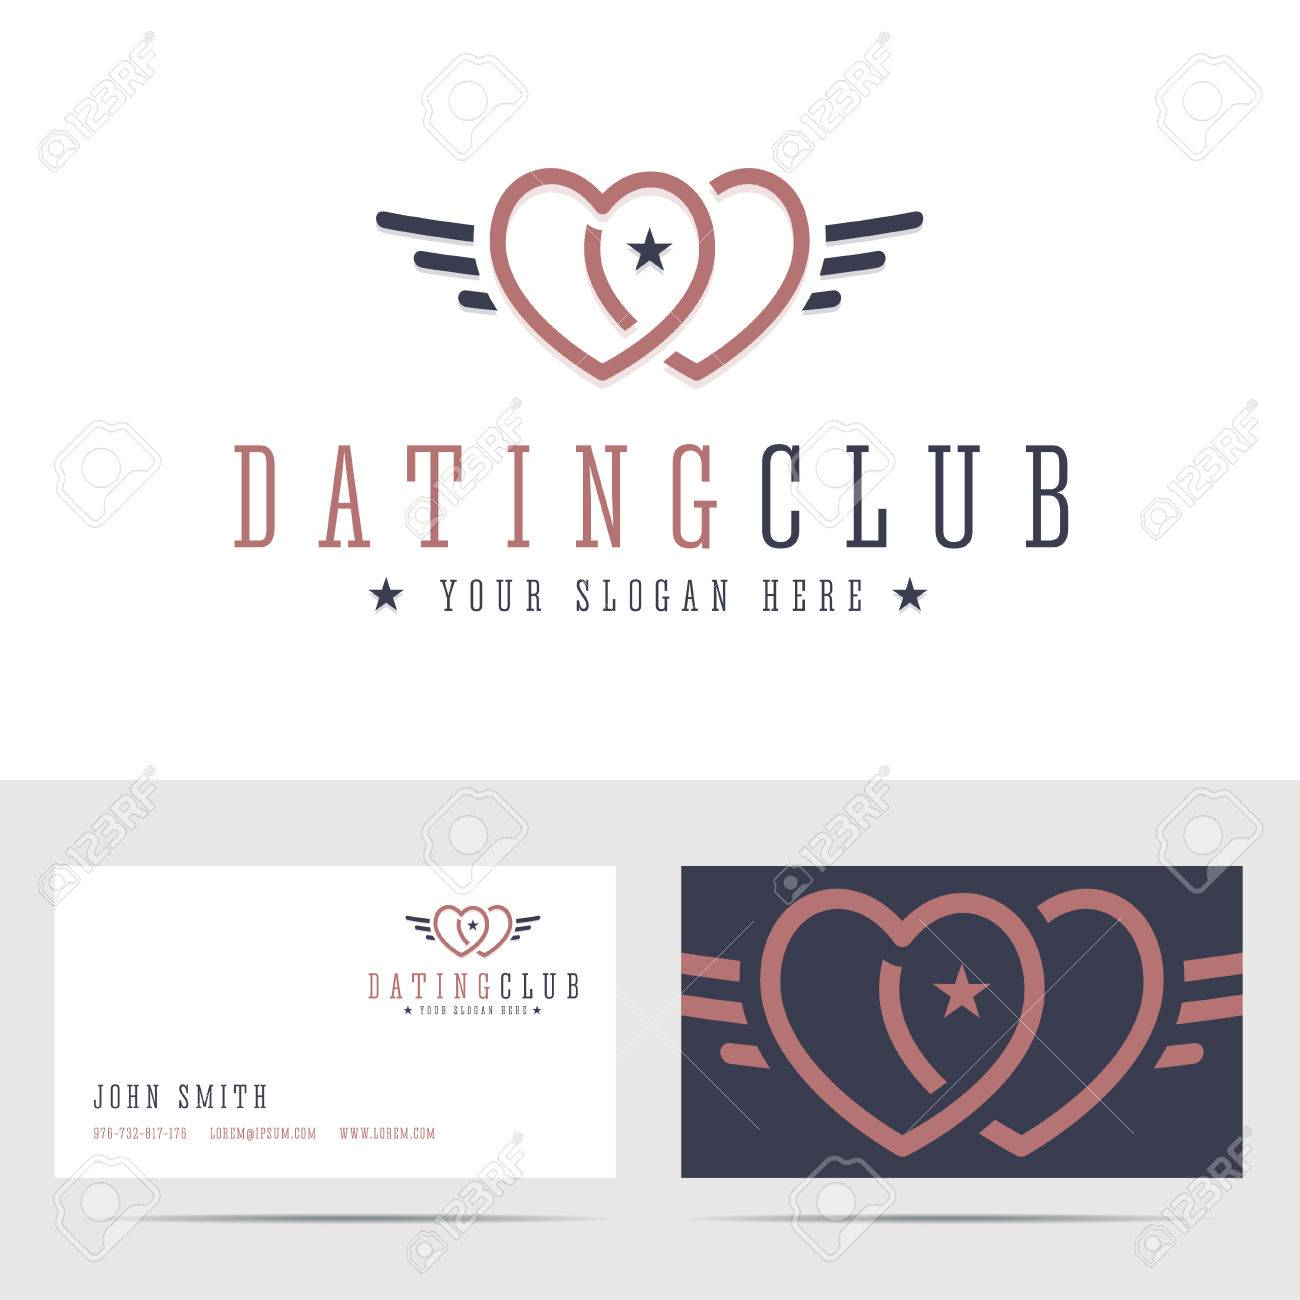 Dating Club And Business Card Template. Two Hearts Sign With ...